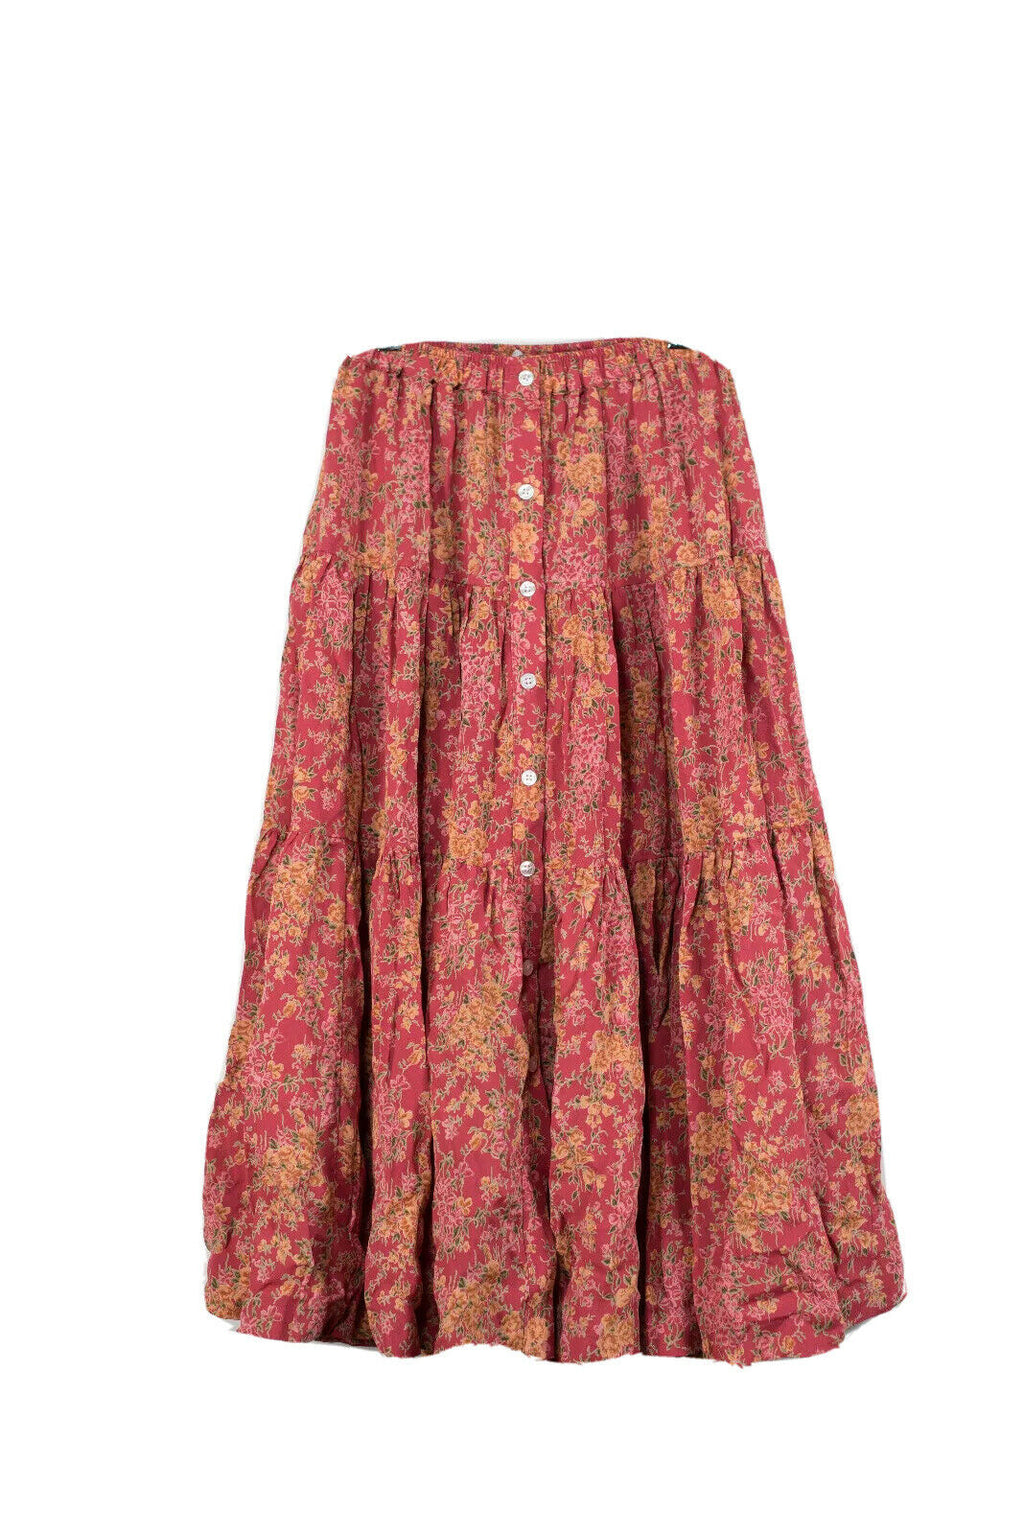 Christy Dawn XS Red Button Front Floral Skirt